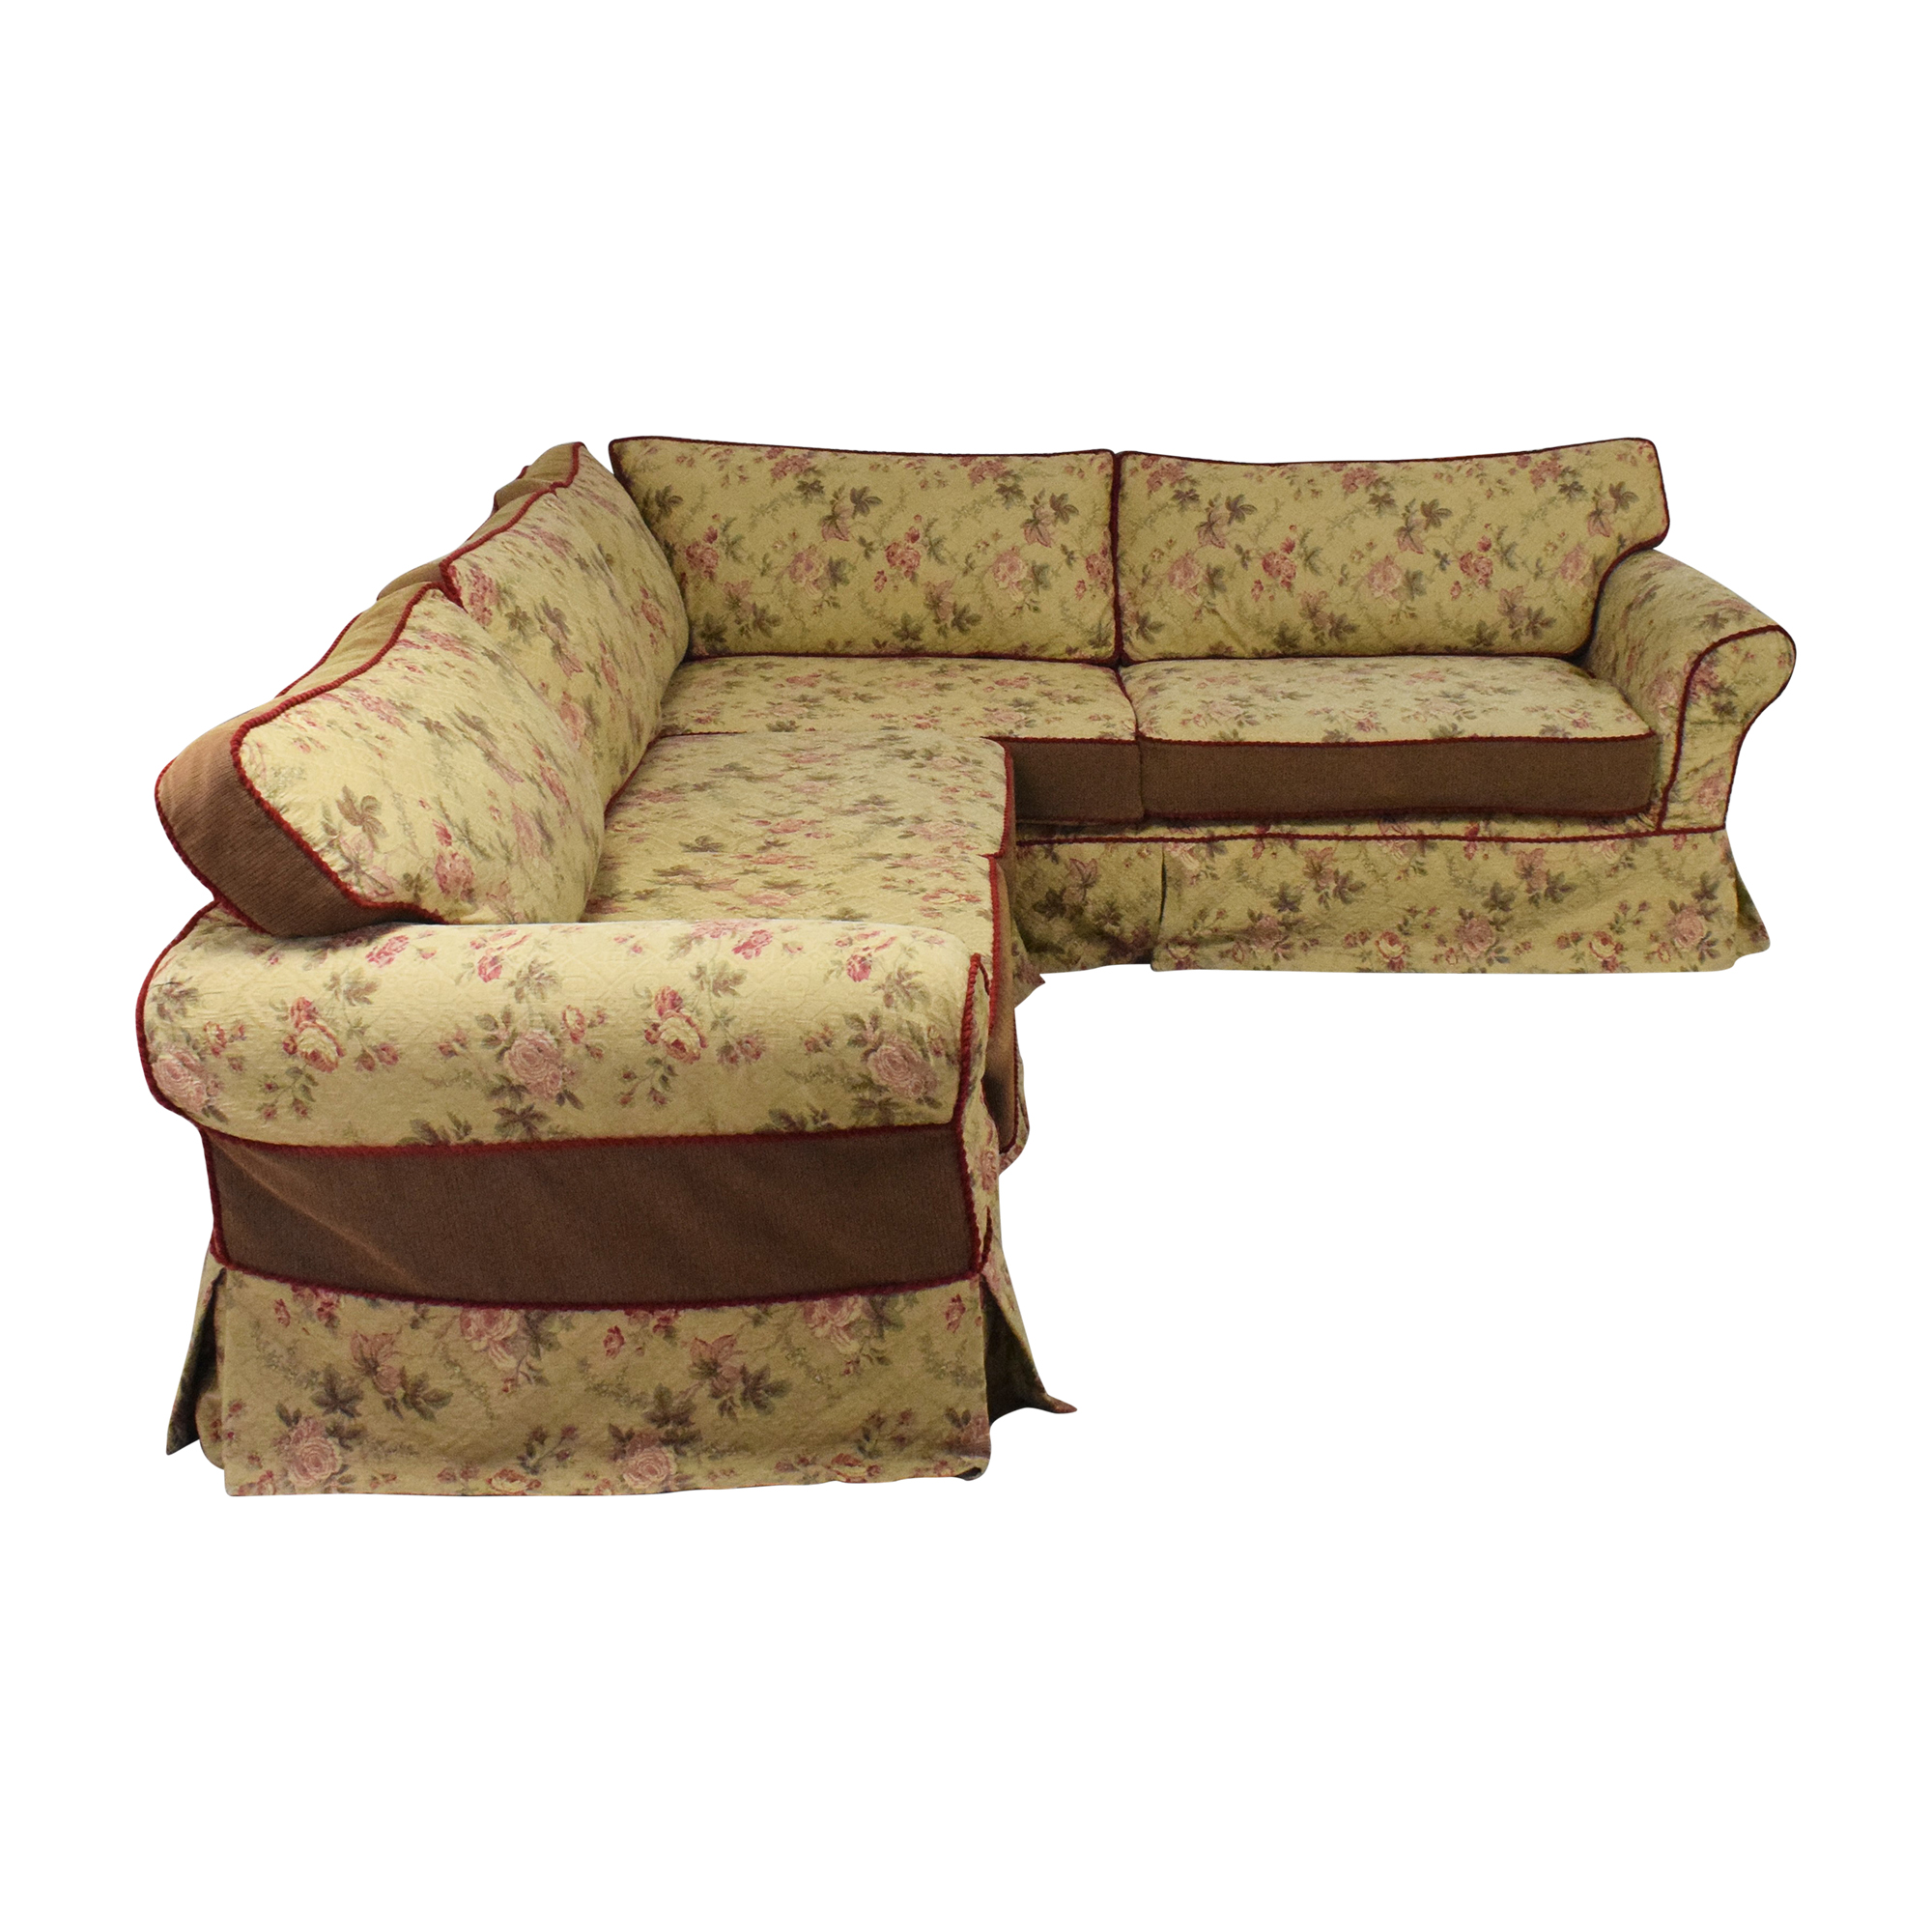 buy Platypus Platypus Roll Arm Slipcovered Sectional Sofa online